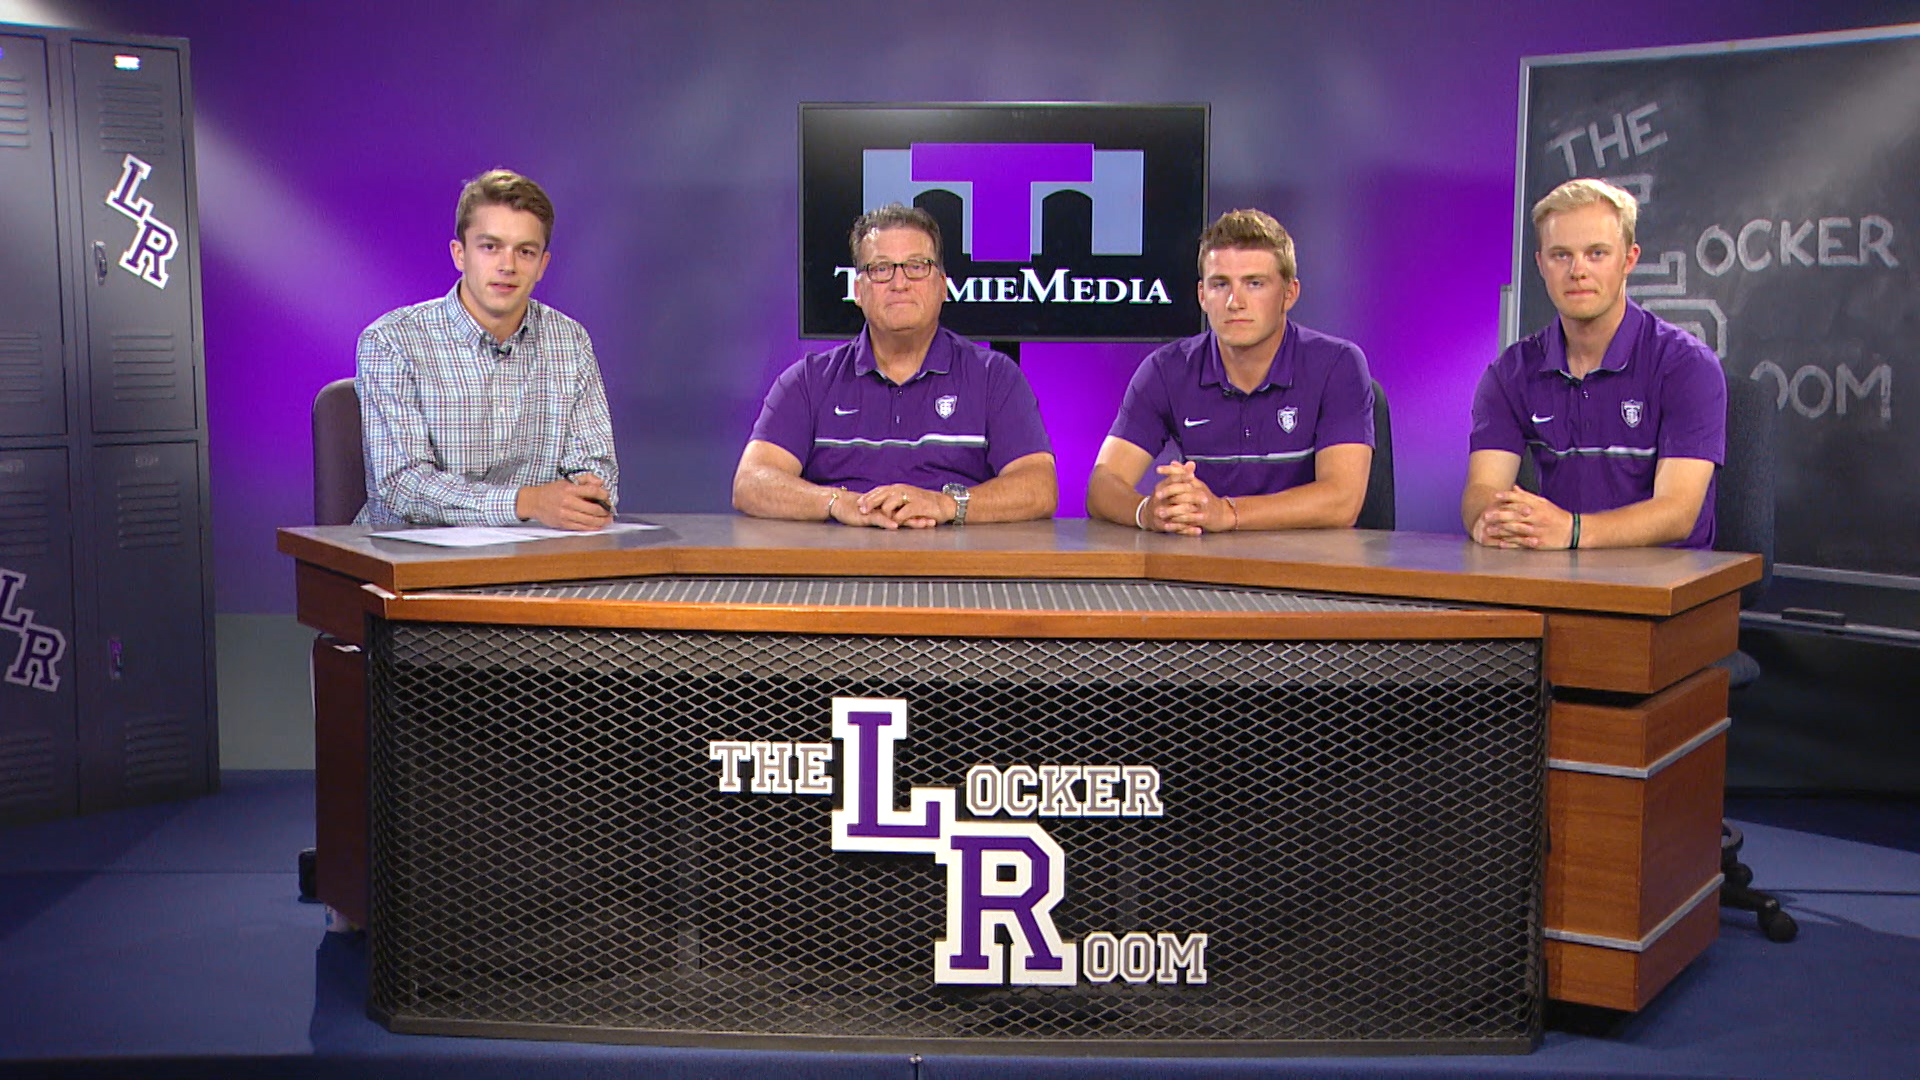 The Locker Room TommieMedia